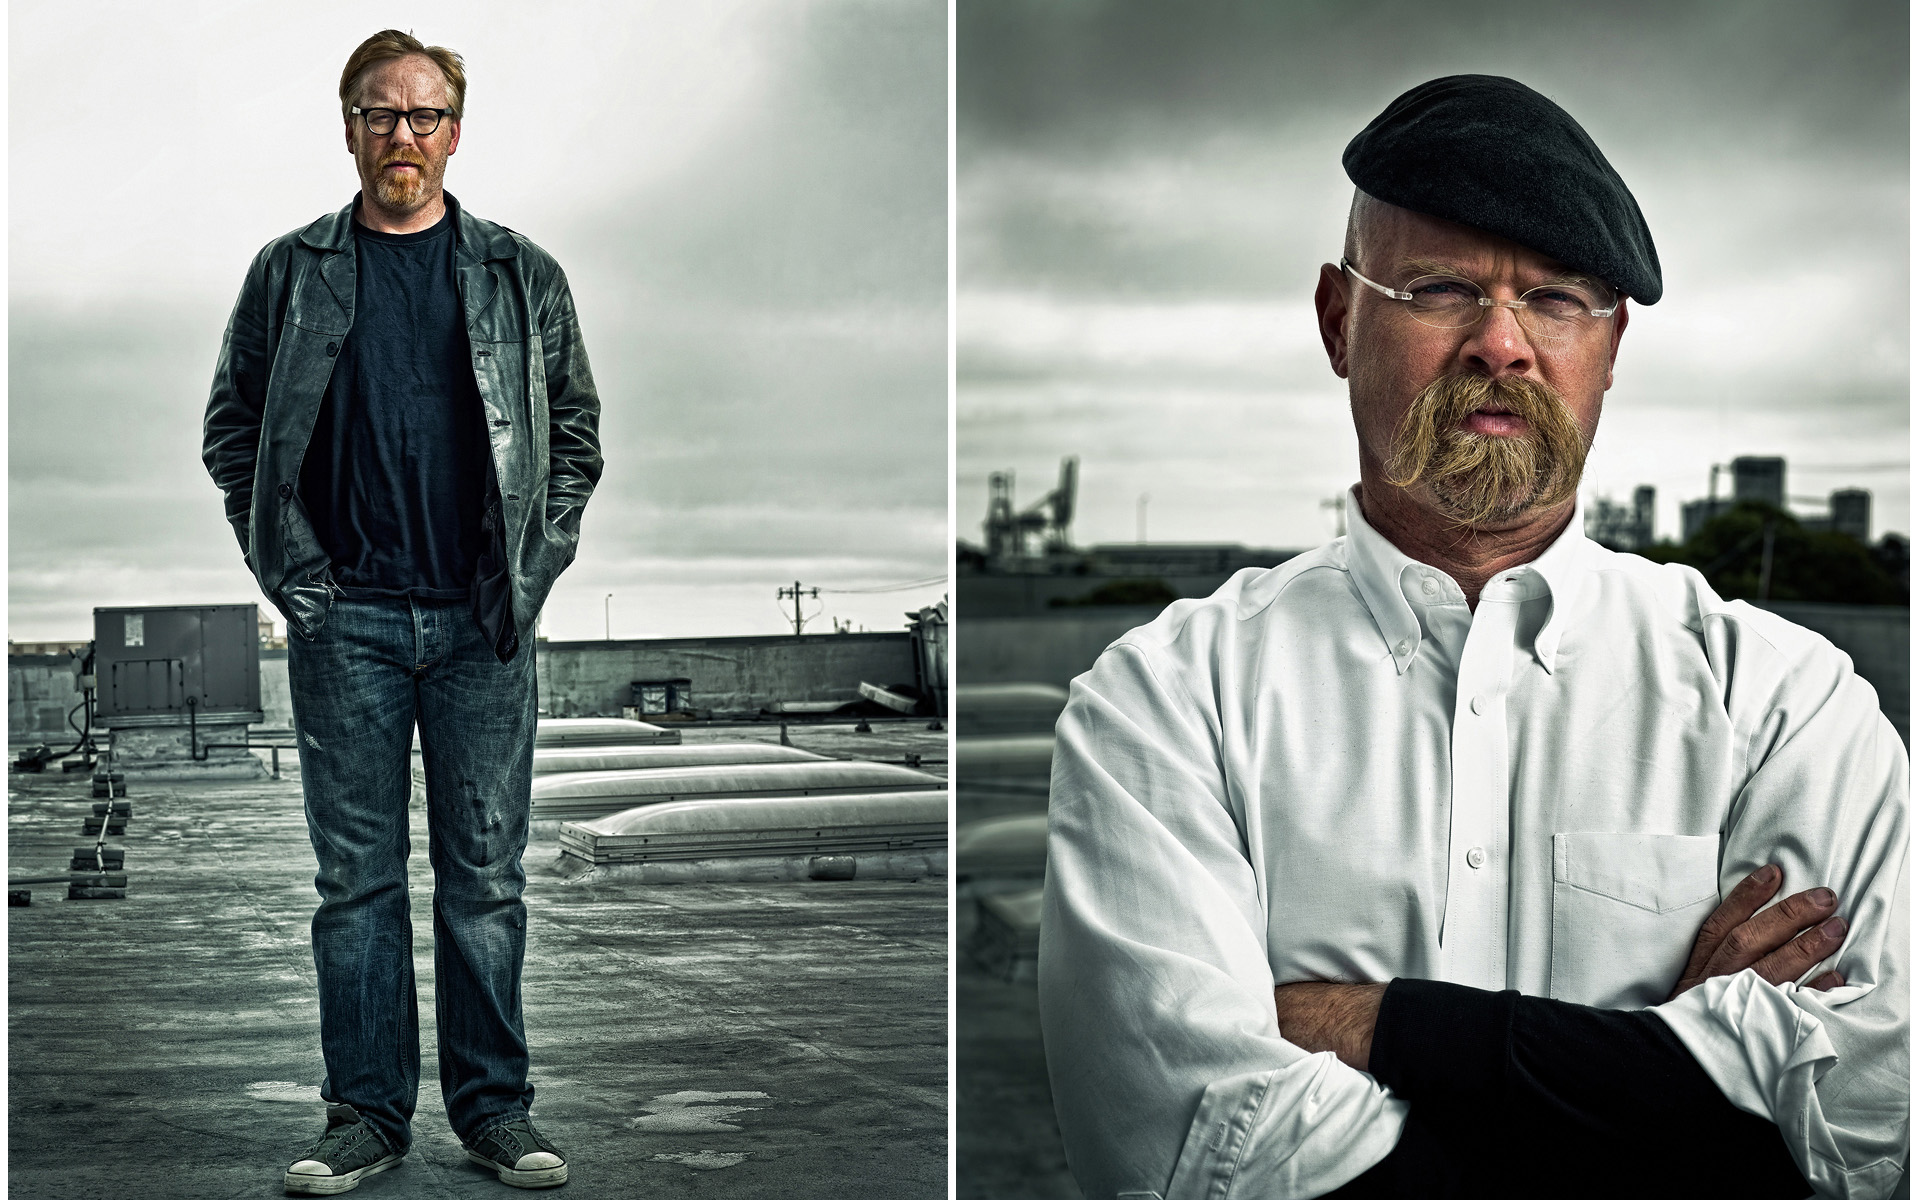 The Mythbusters advertising campaign